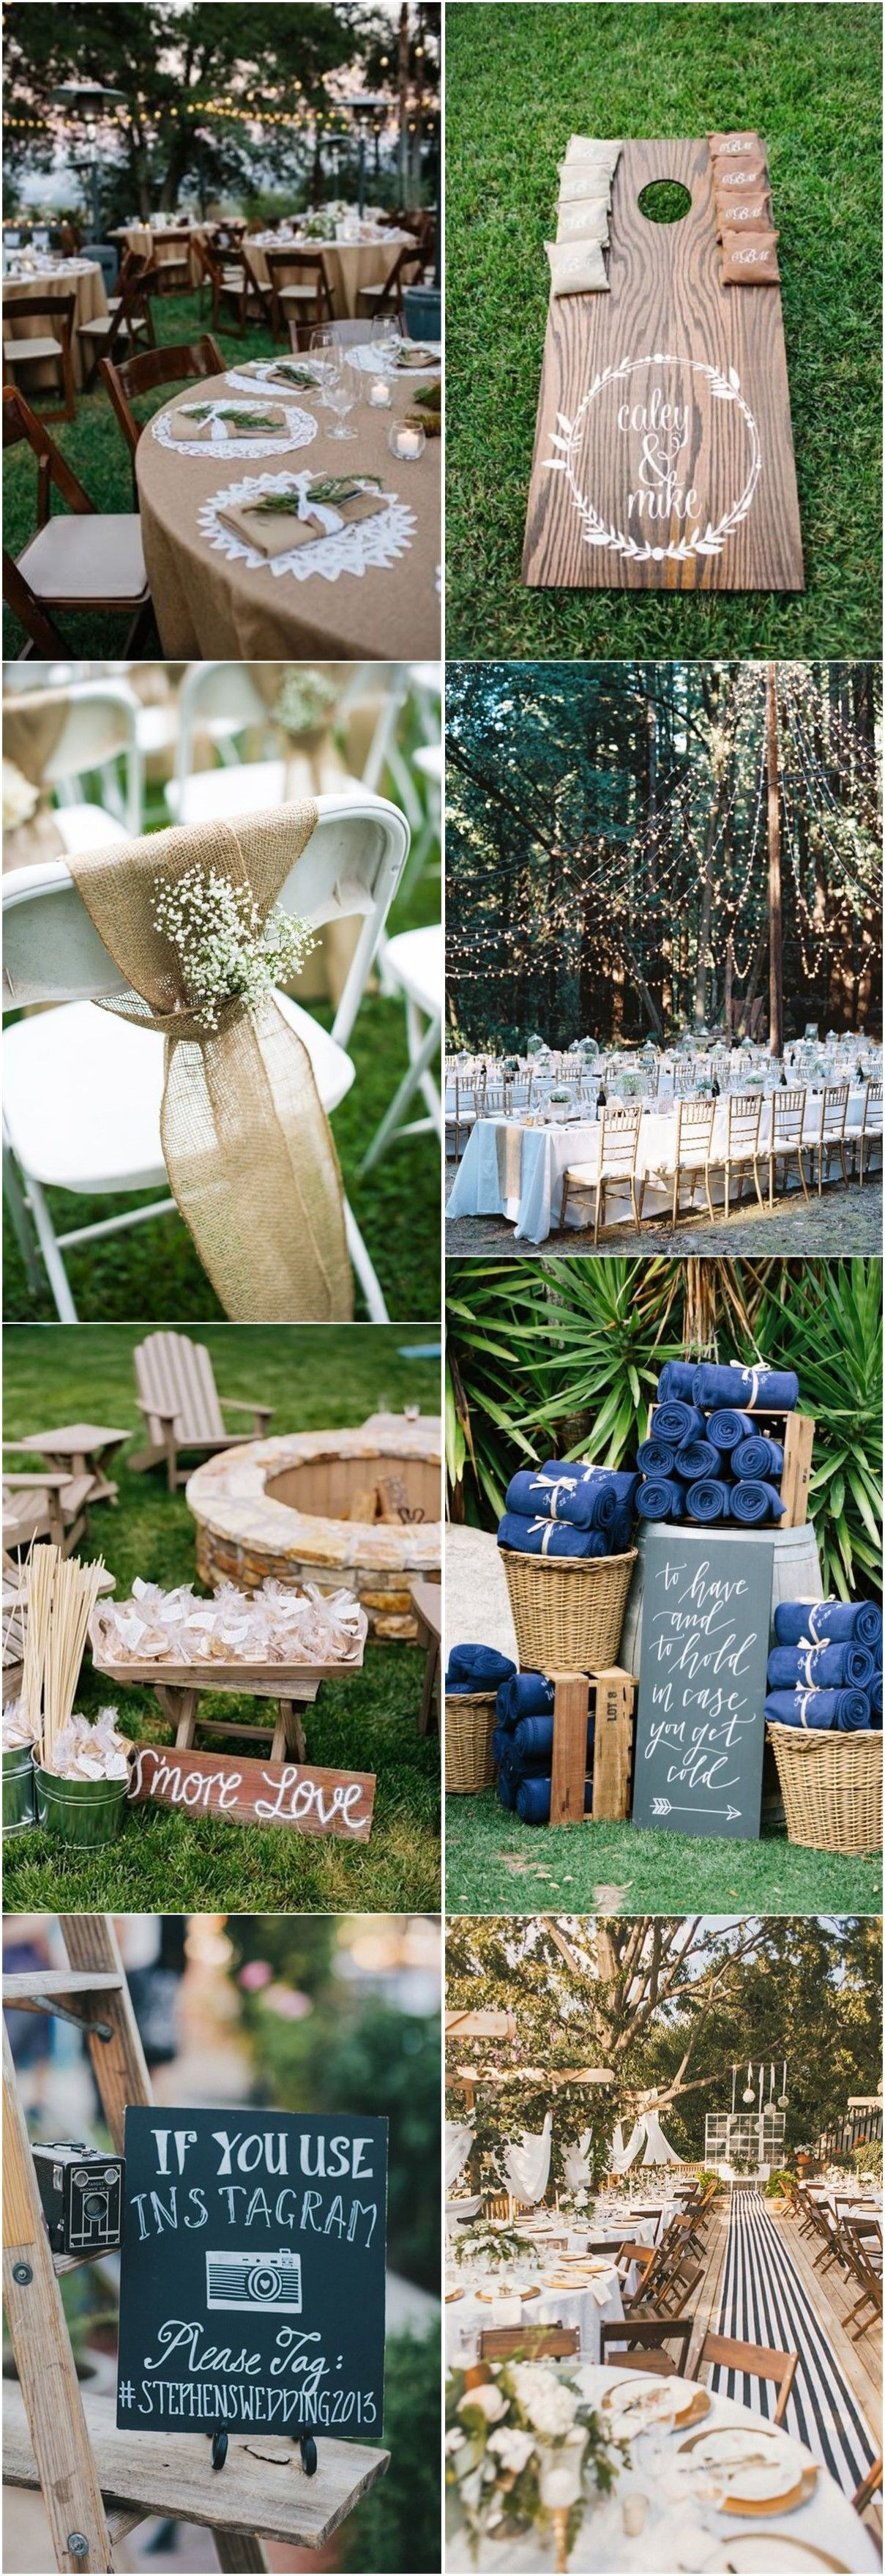 22 rustic backyard wedding decoration ideas on a budget casamento wedding decorations 22 rustic backyard wedding decoration ideas on a budget more junglespirit Image collections